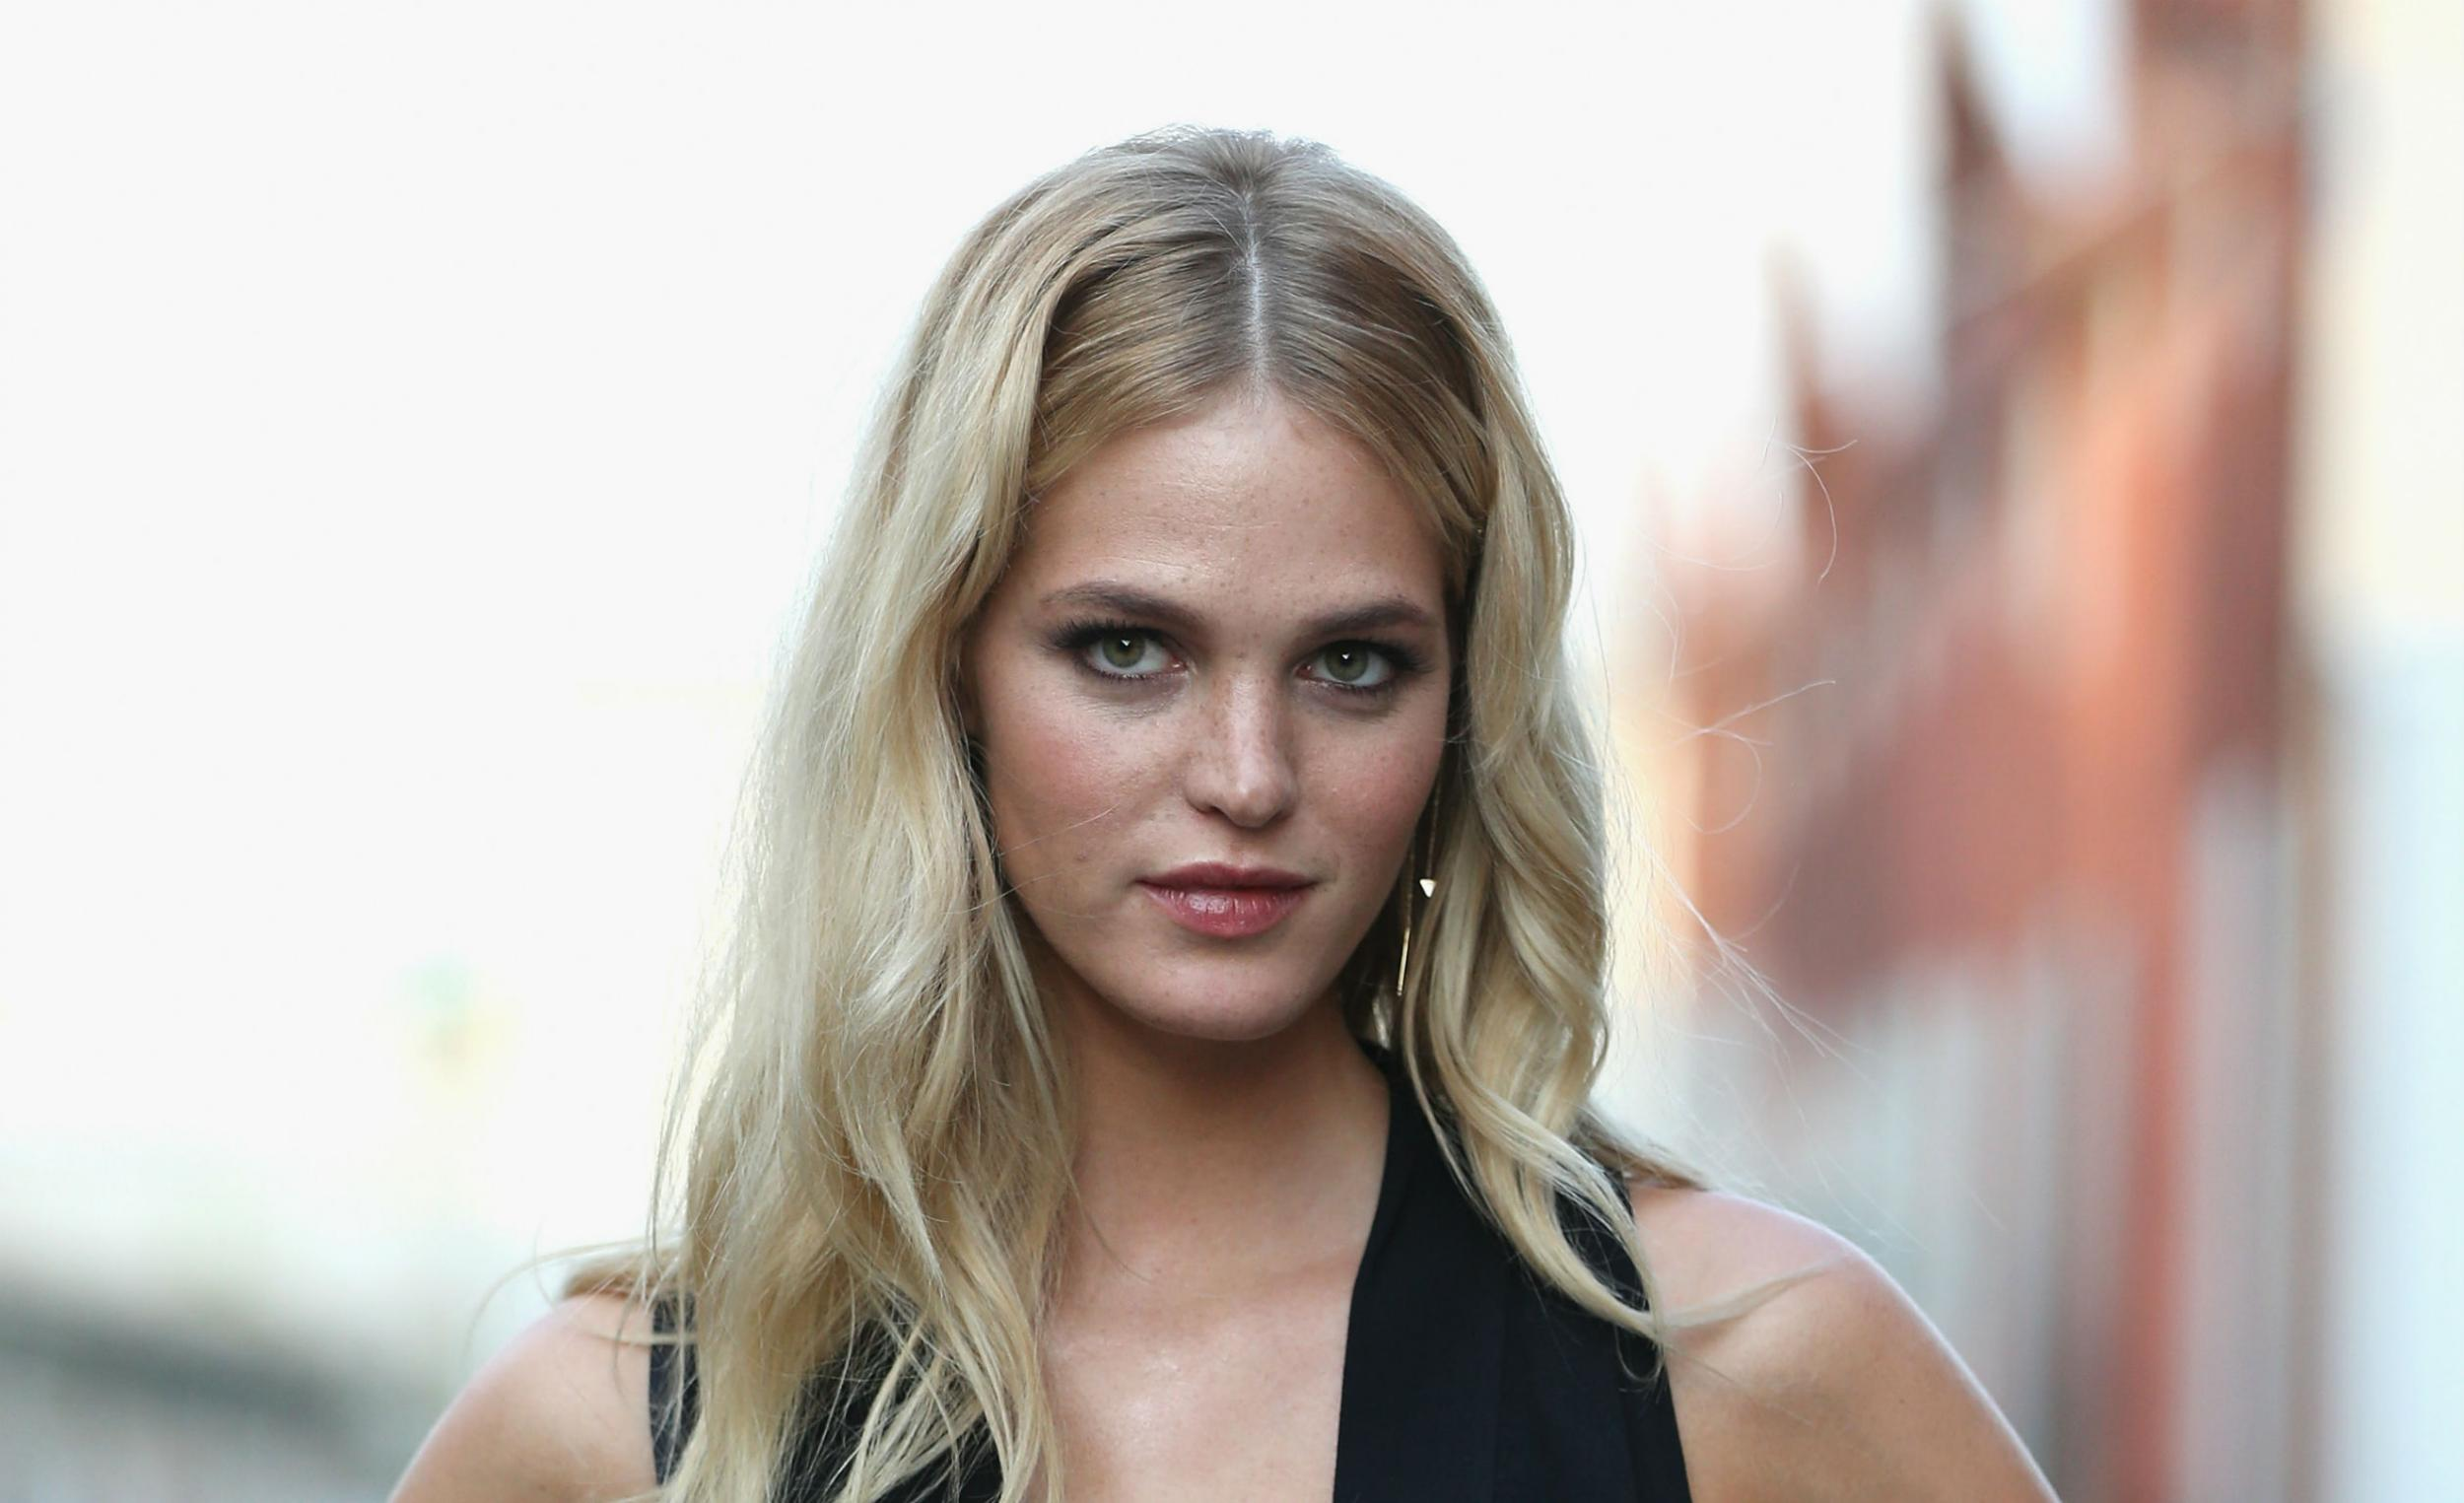 Watch Erin Heatherton video